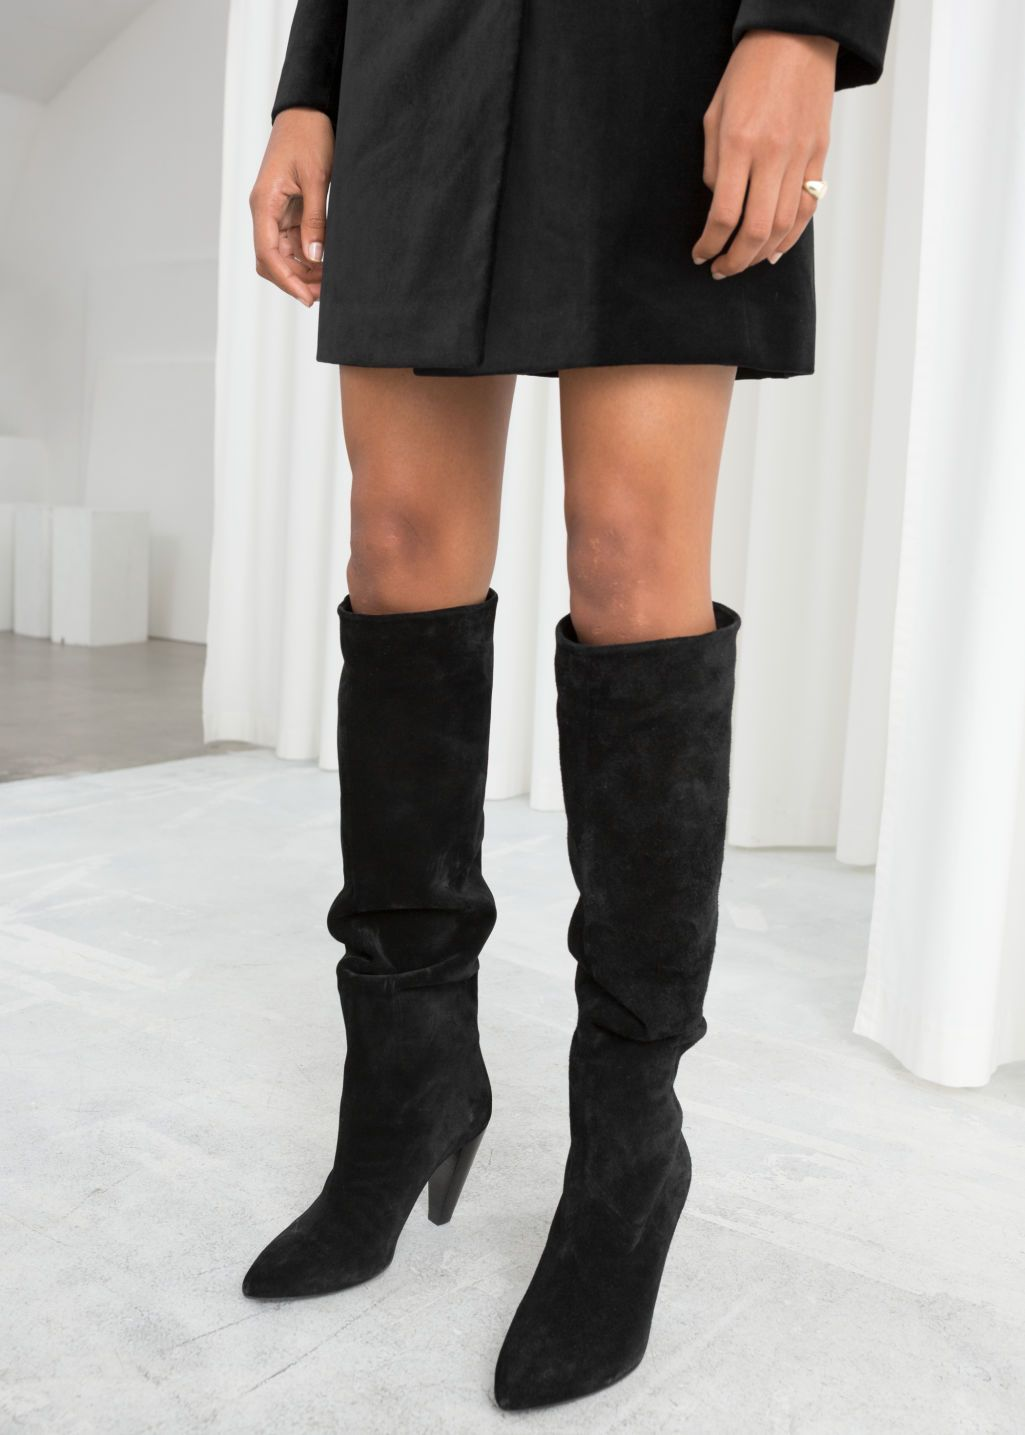 Pdp High Knee Boots Outfit Suede Boots Knee High High Boots Outfit [ 1435 x 1025 Pixel ]